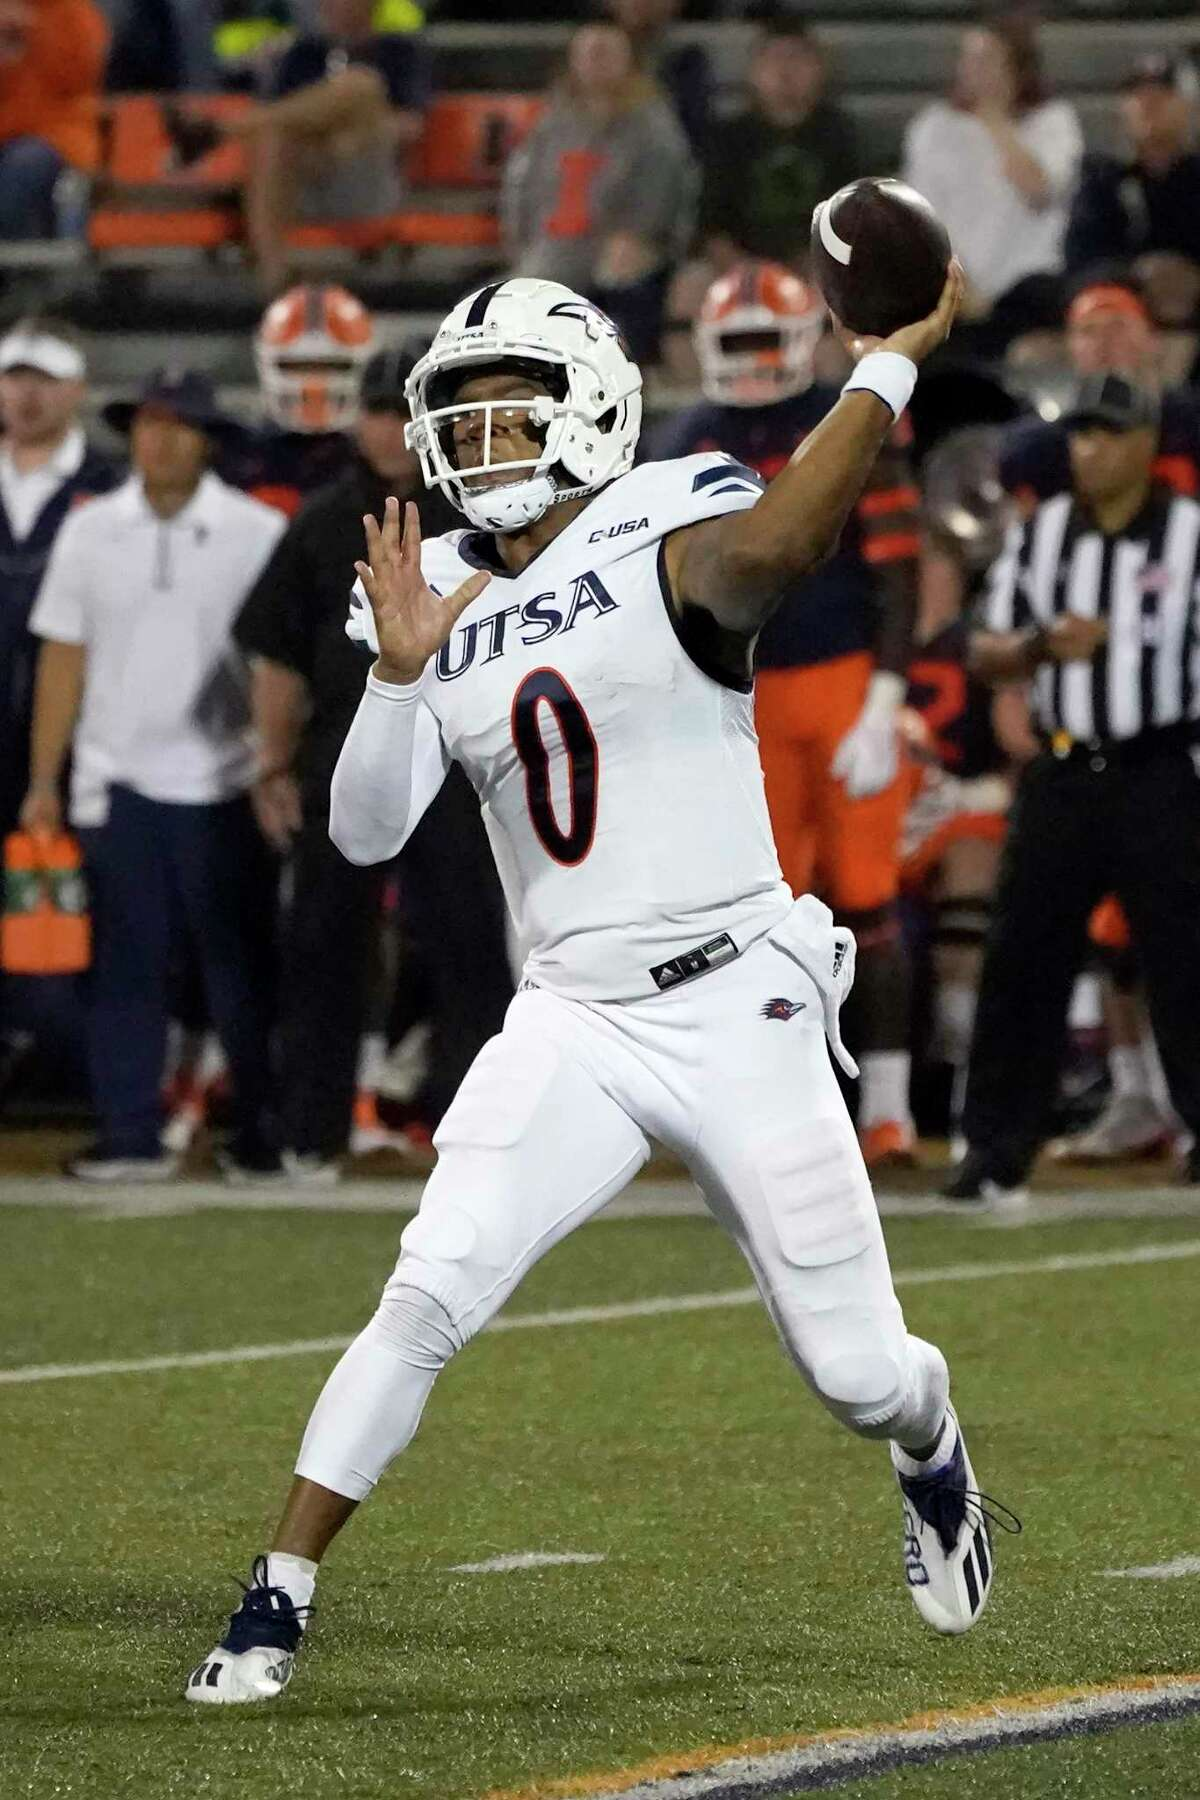 UTSA quarterback Frank Harris passes during the first half of an NCAA college football game against Illinois, Saturday, Sept. 4, 2021, in Champaign, Ill. (AP Photo/Charles Rex Arbogast)